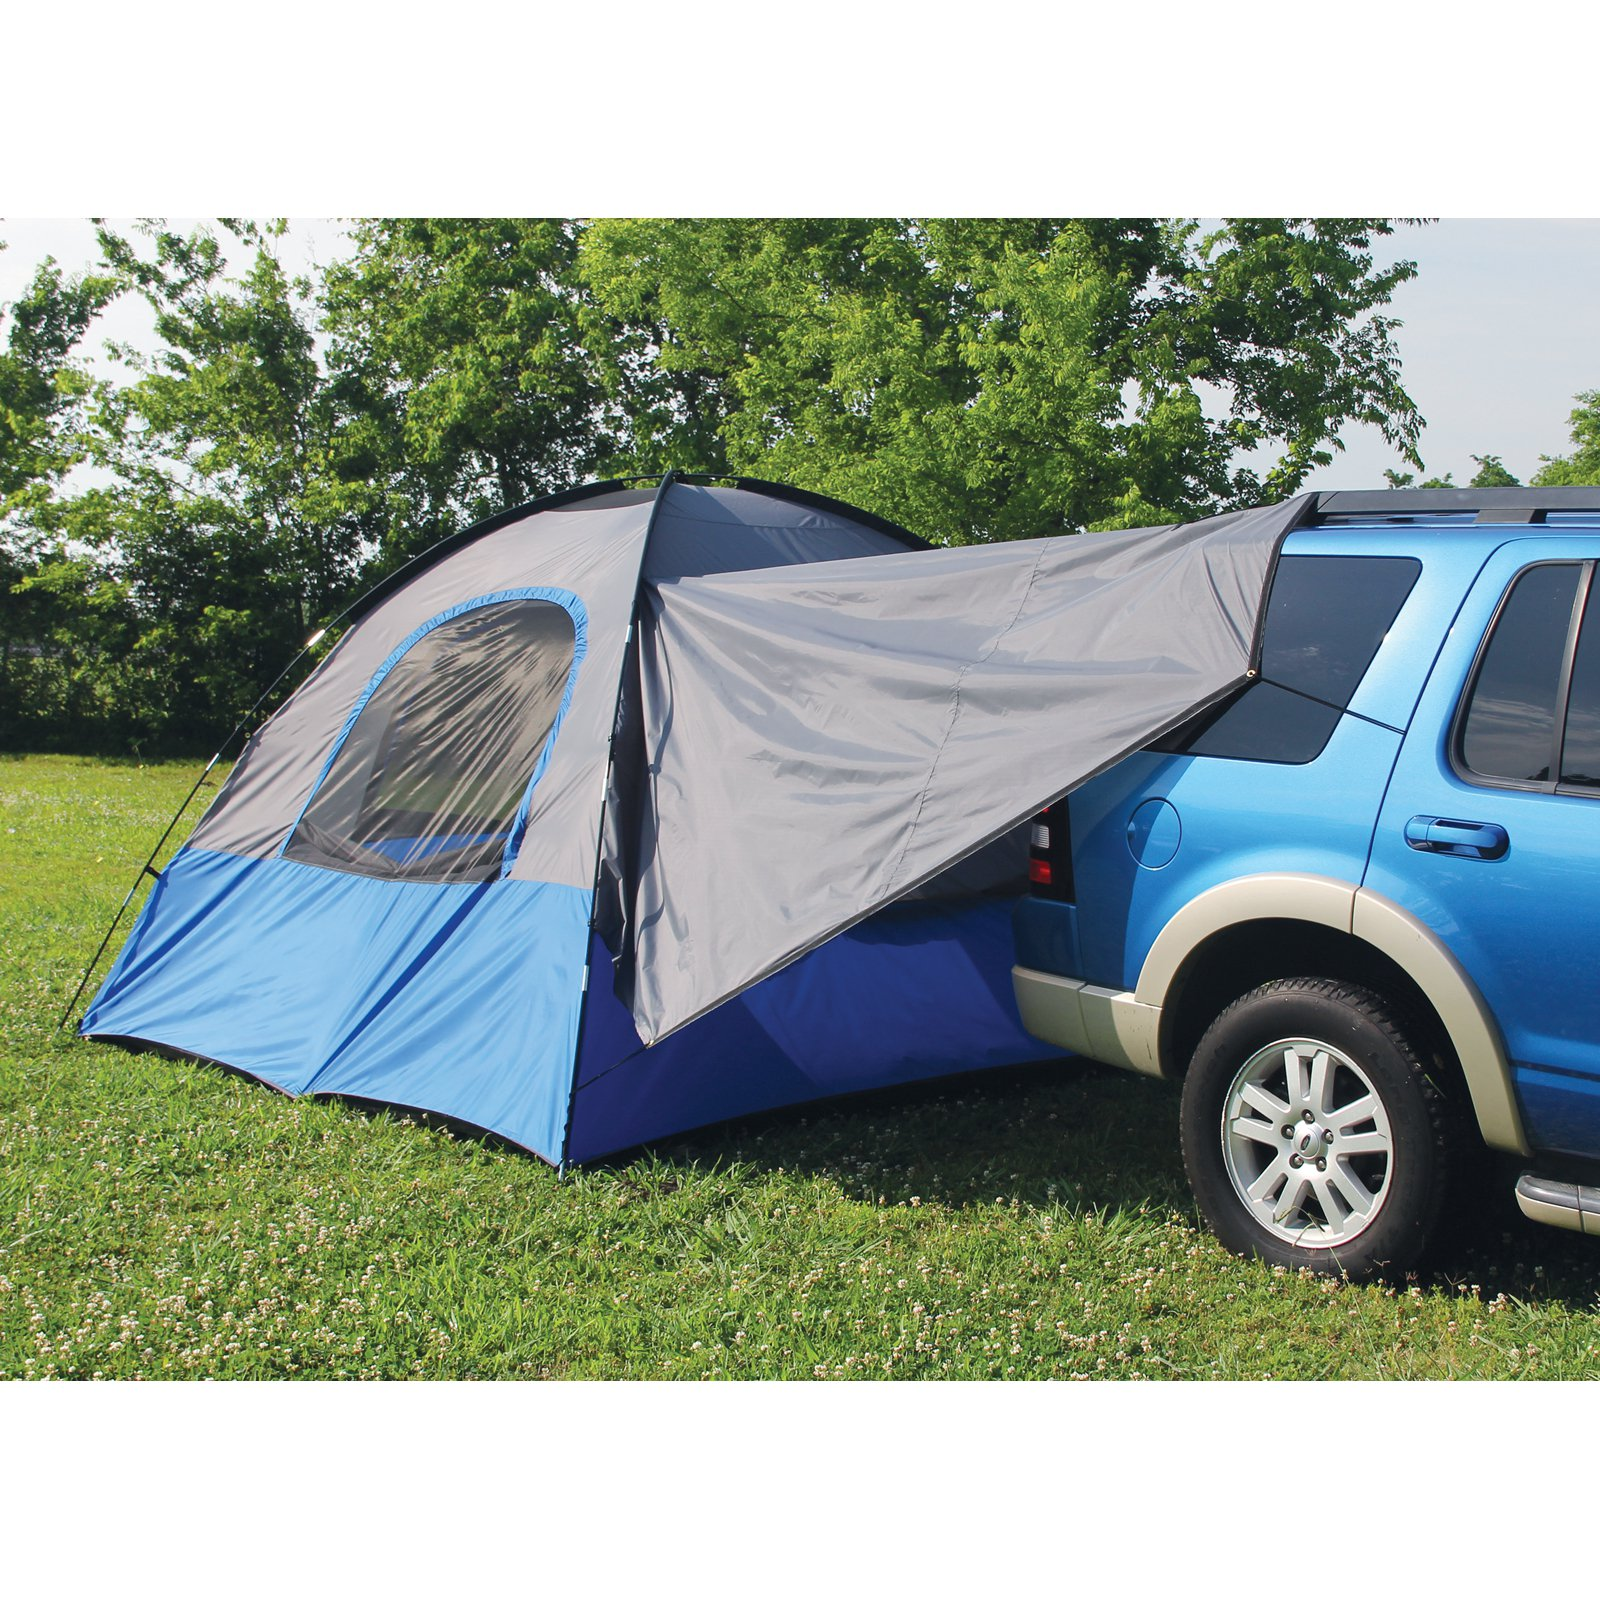 sc 1 st  Walmart : tents that attach to suv - memphite.com